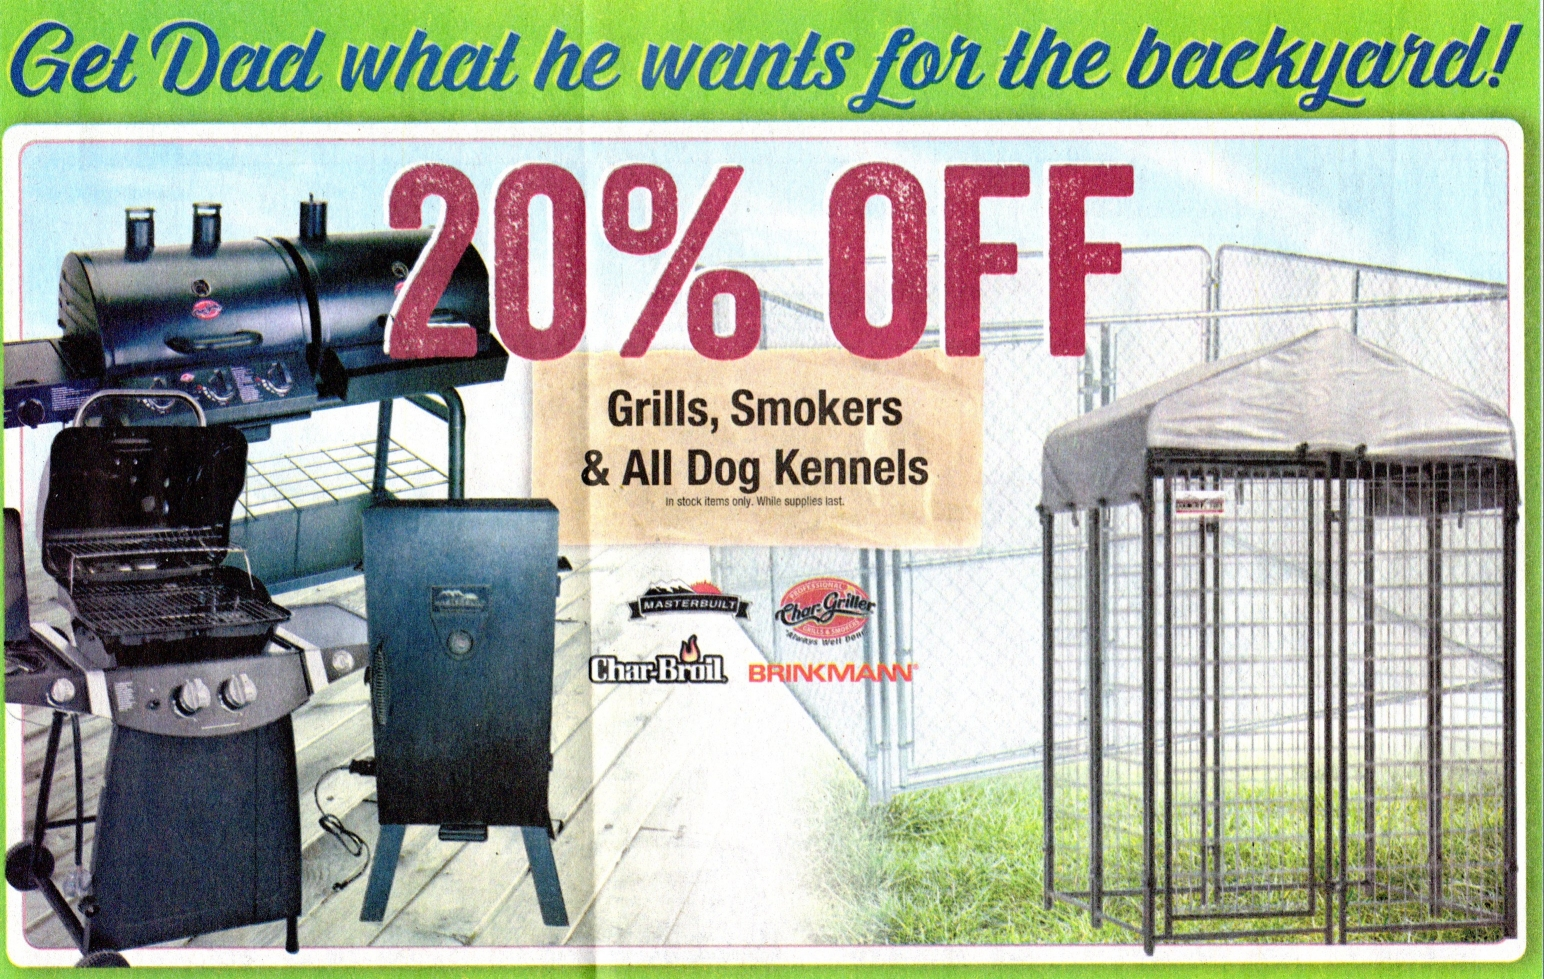 Grills, smokers, and dog kennels